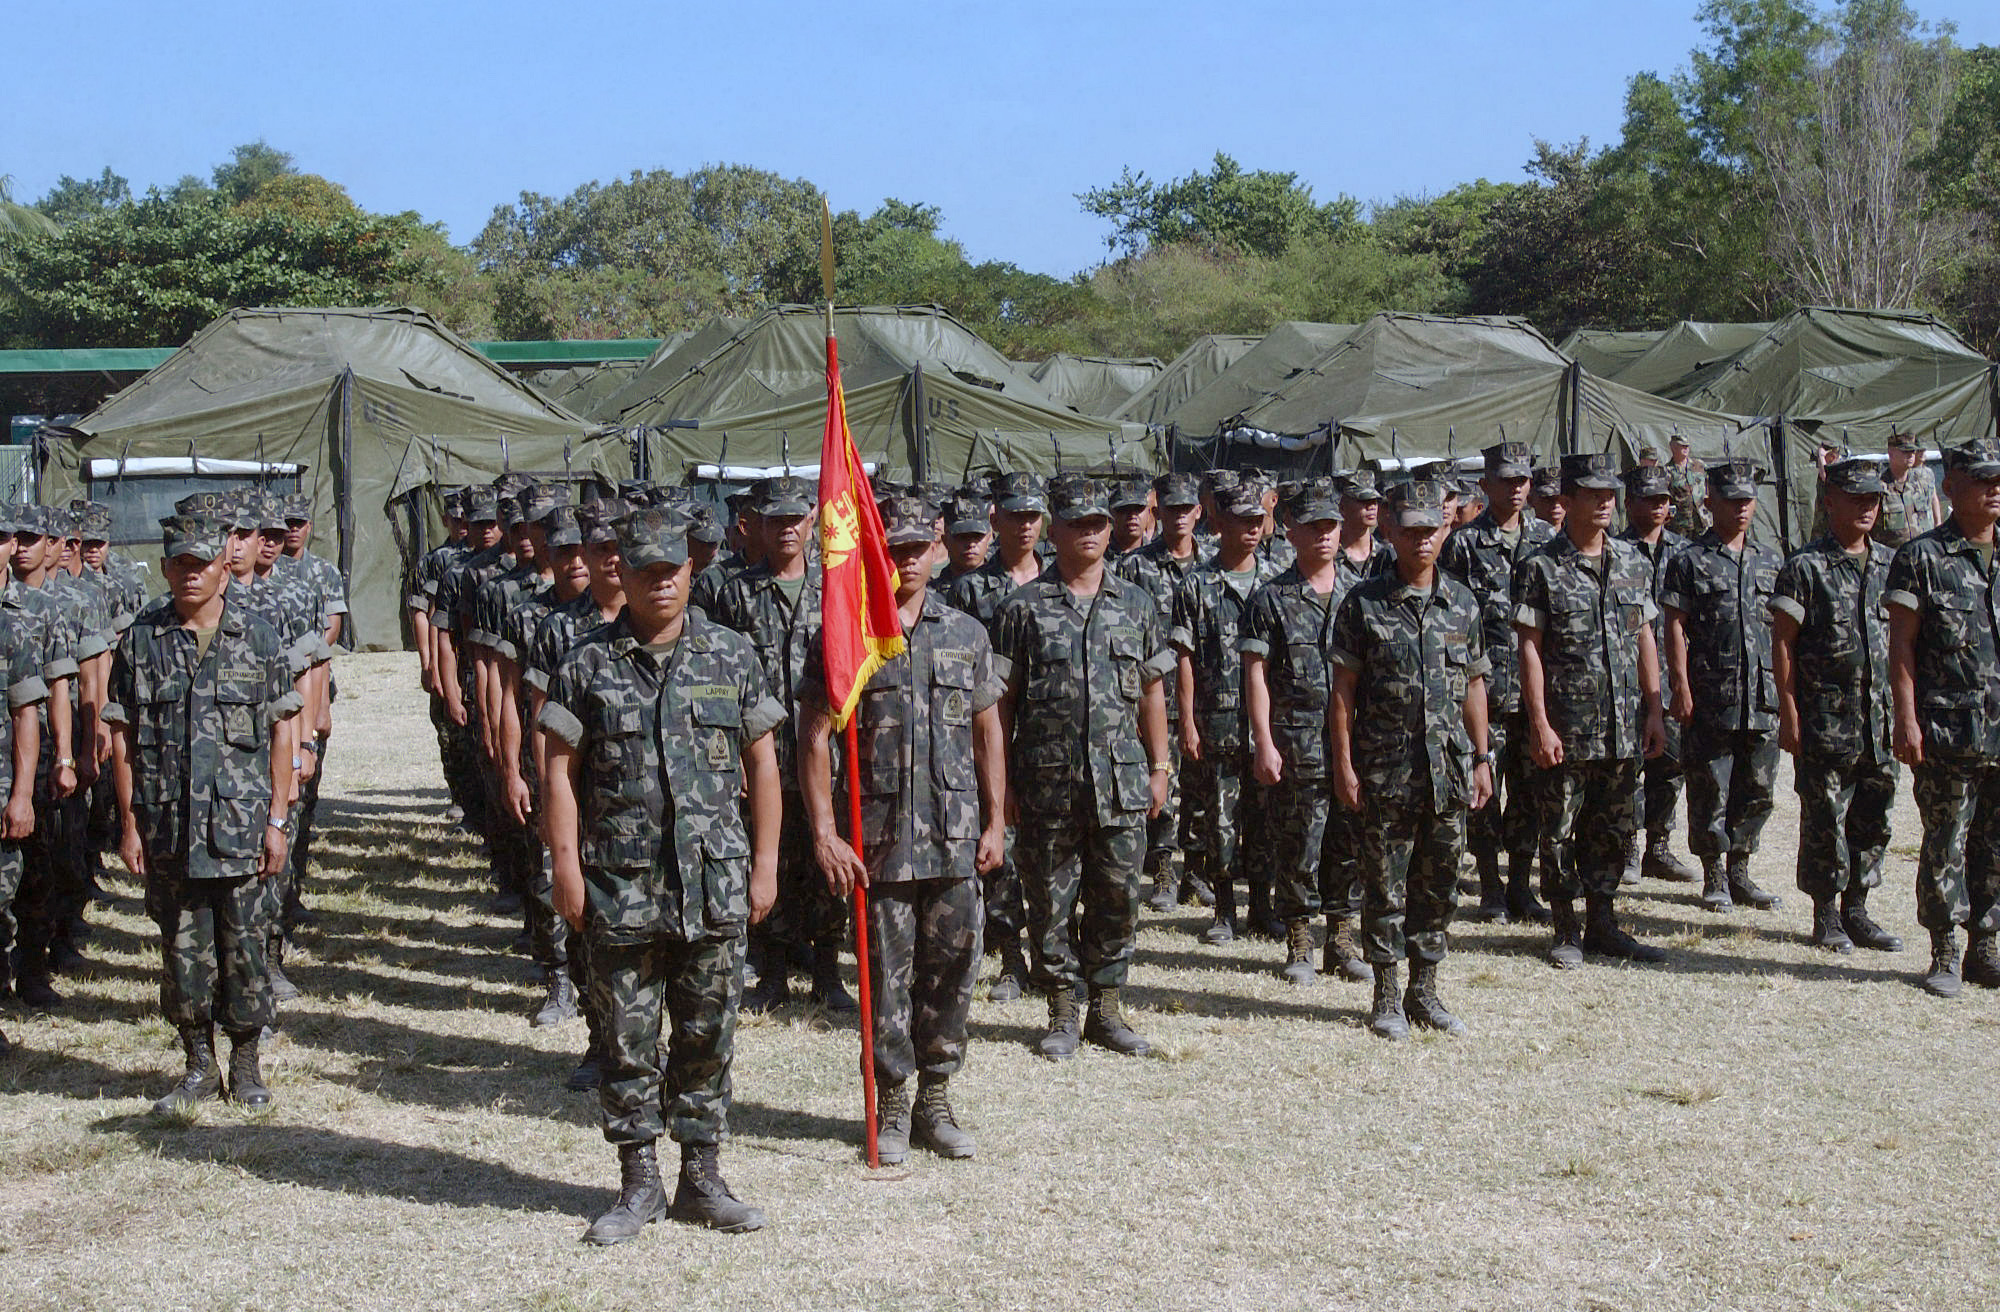 File:RP Marines in formation DM-SD-05-09106.JPEG ...